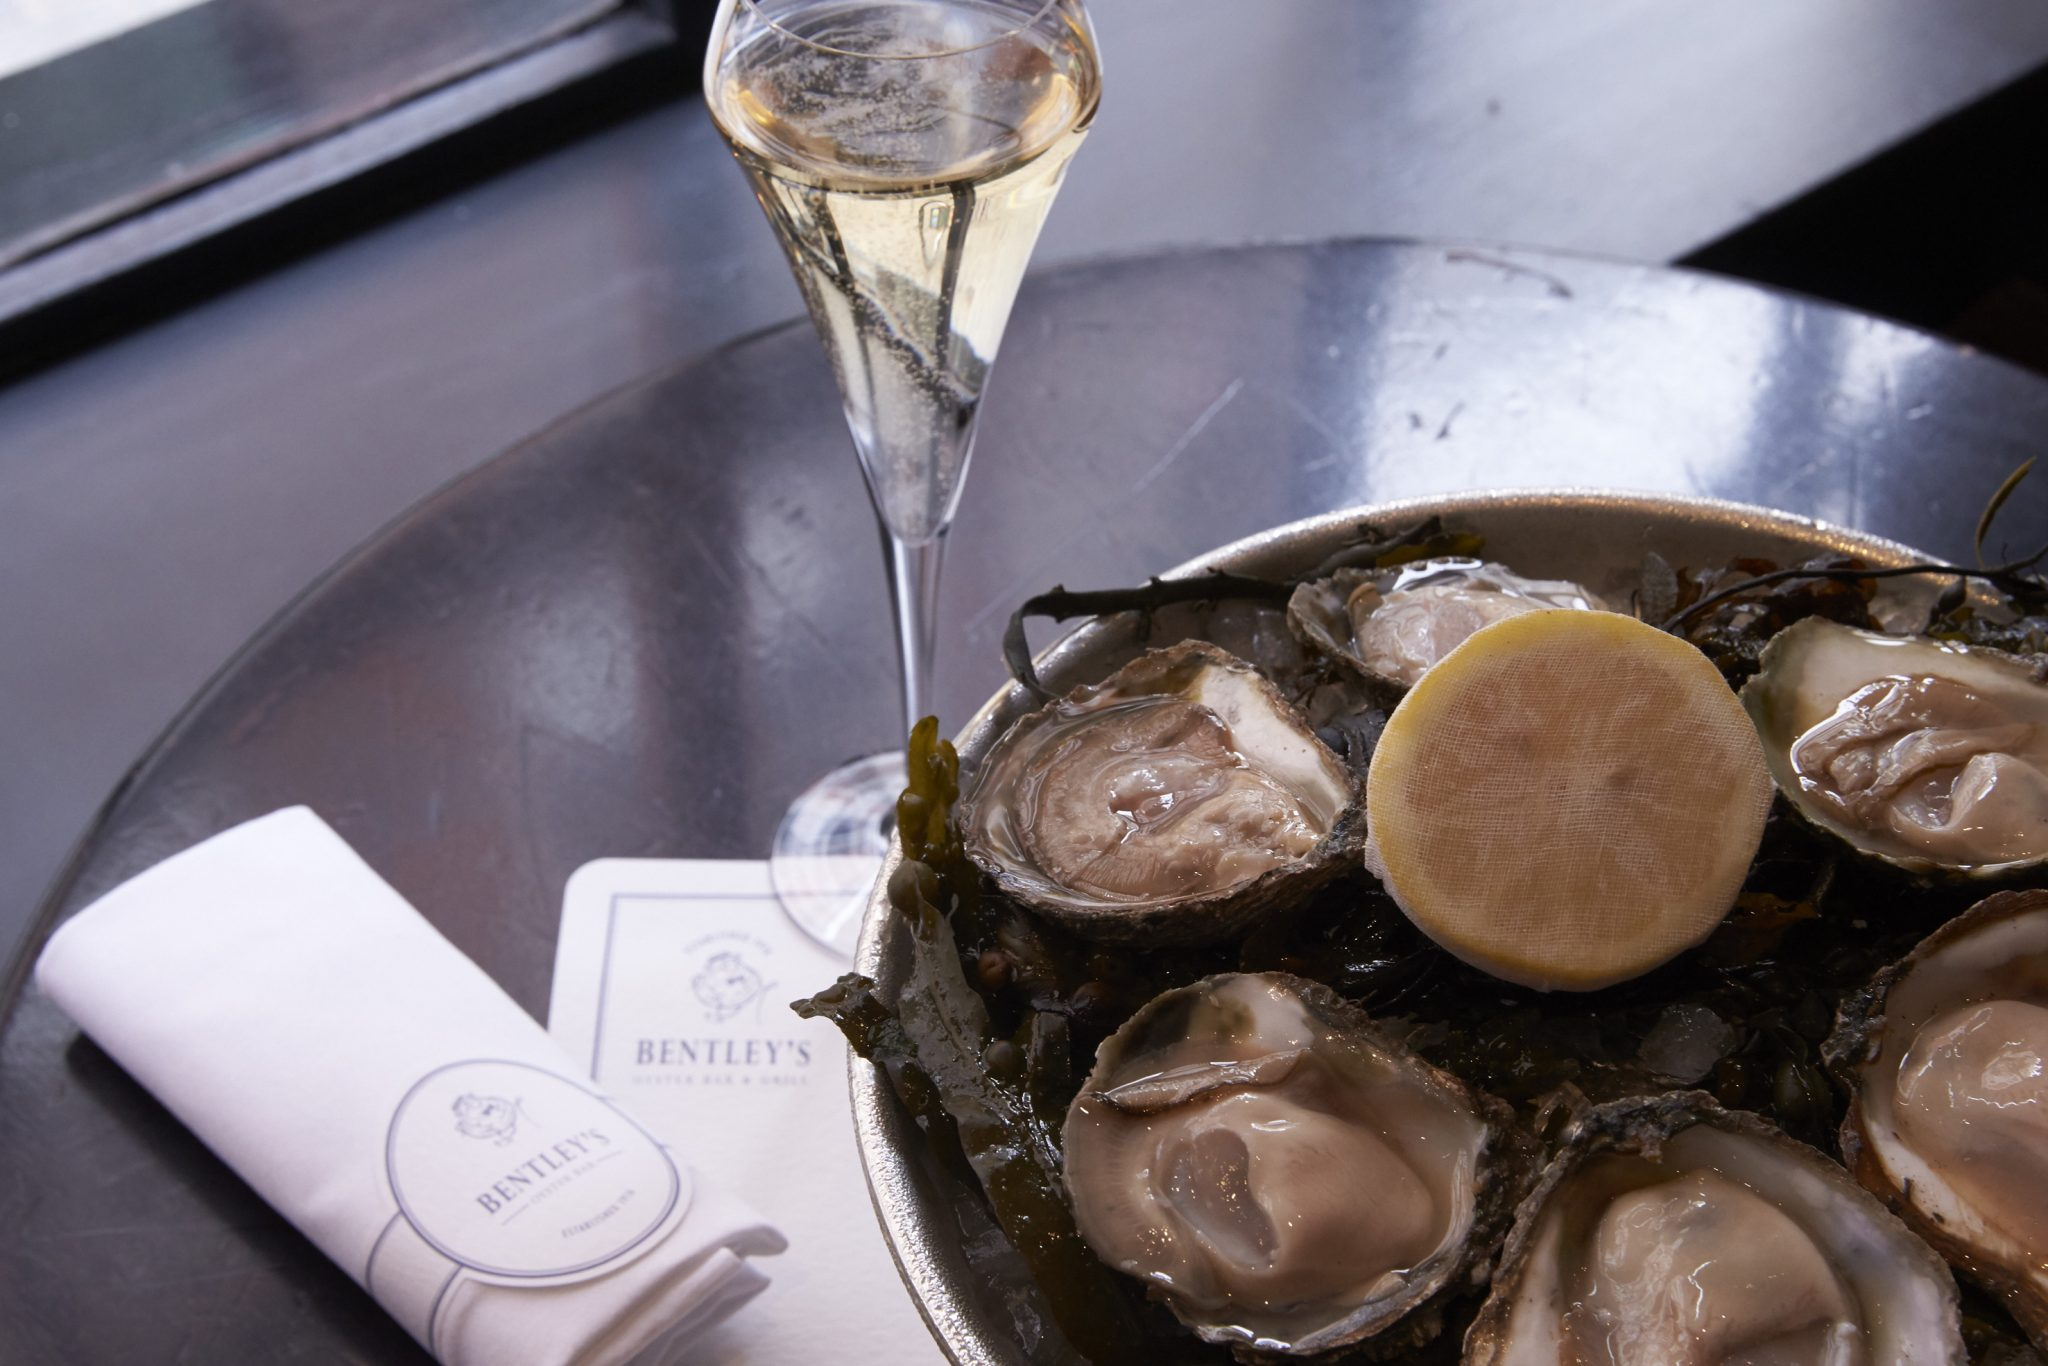 Oyster Masterclass at Bentley's Oyster Bar & Grill